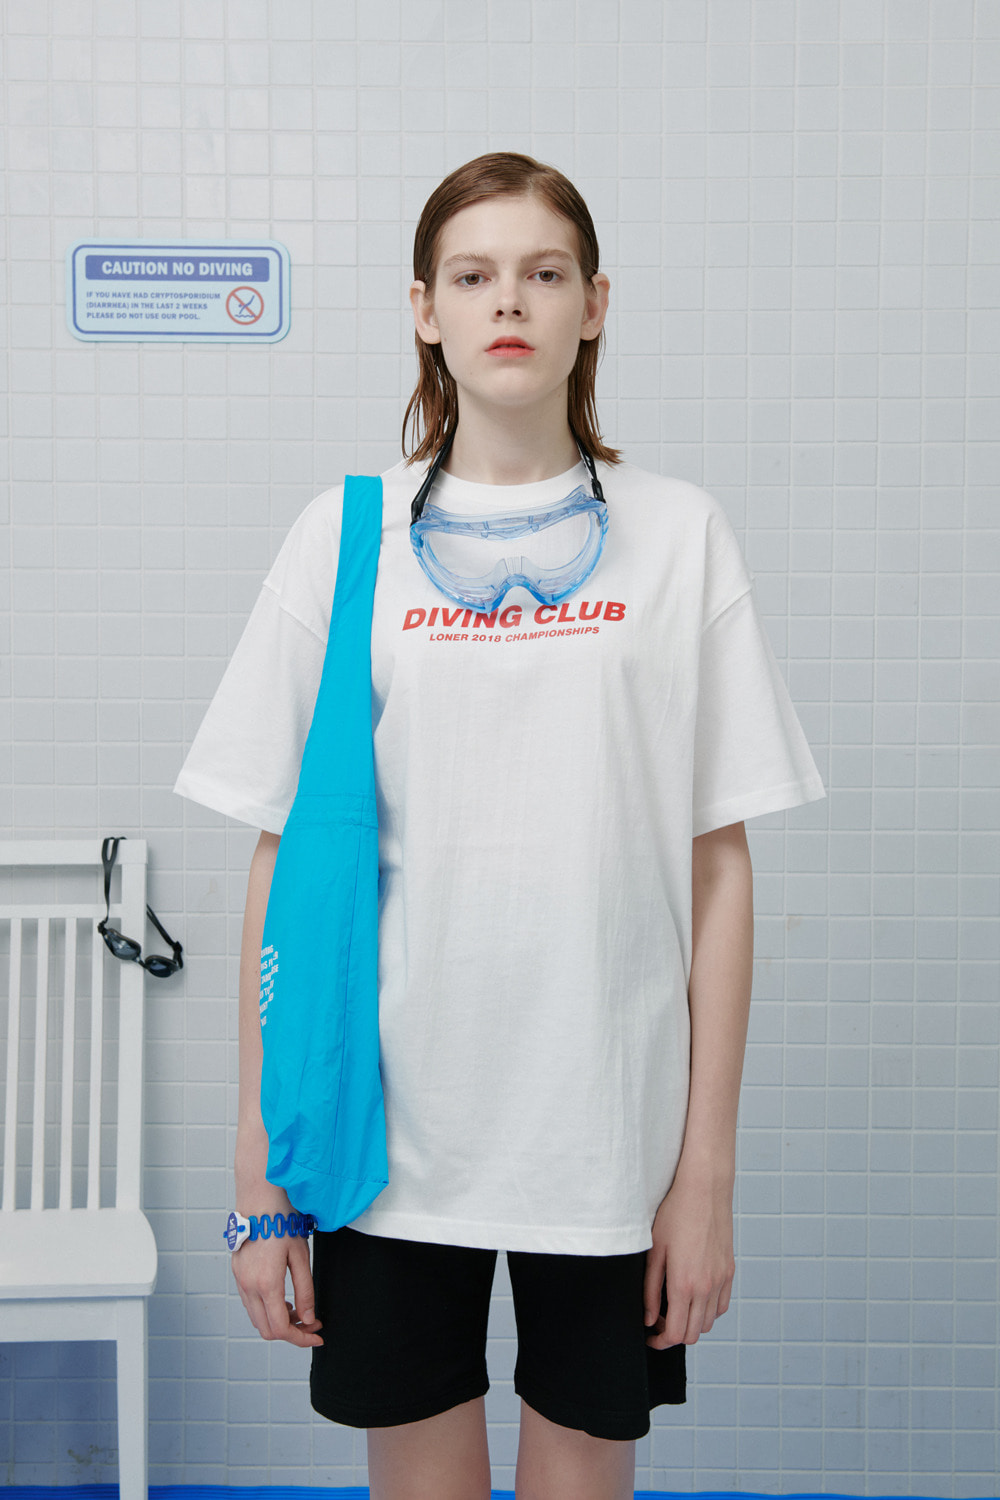 Diving club tshirt-white (기간한정 09.11 - 09.17)